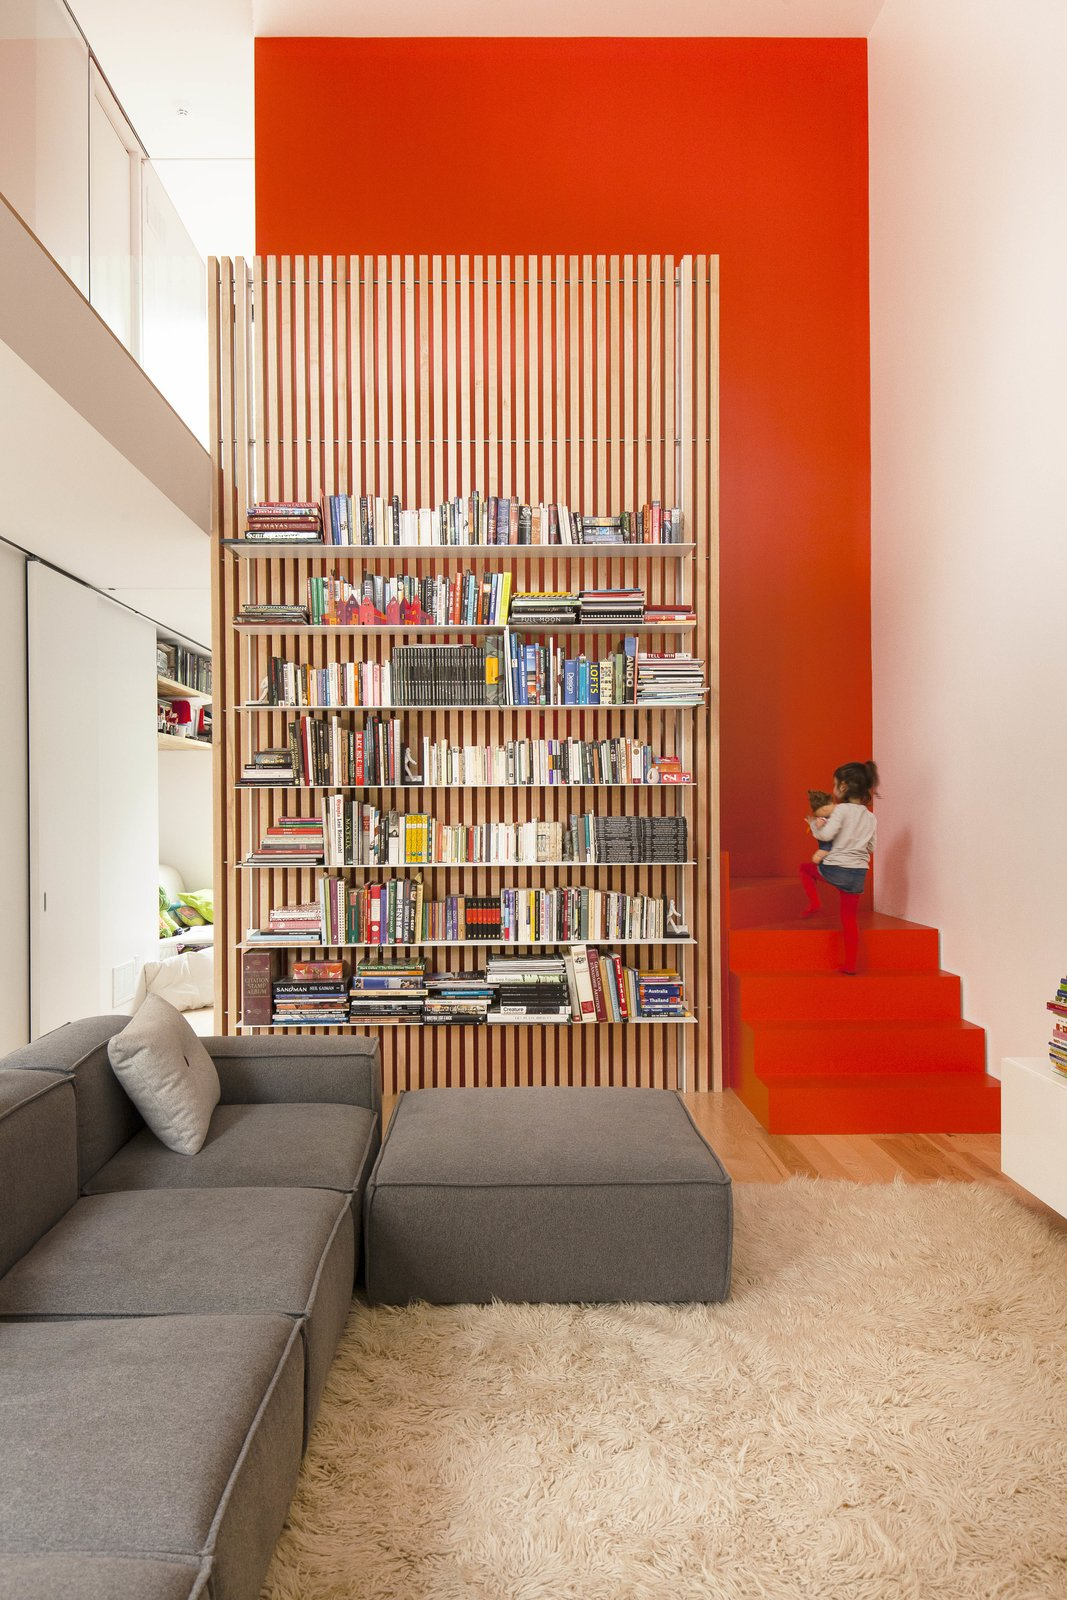 Photo 1 of 12 in 11 Modern Stairways That Do Way More Than Just Connect Floors